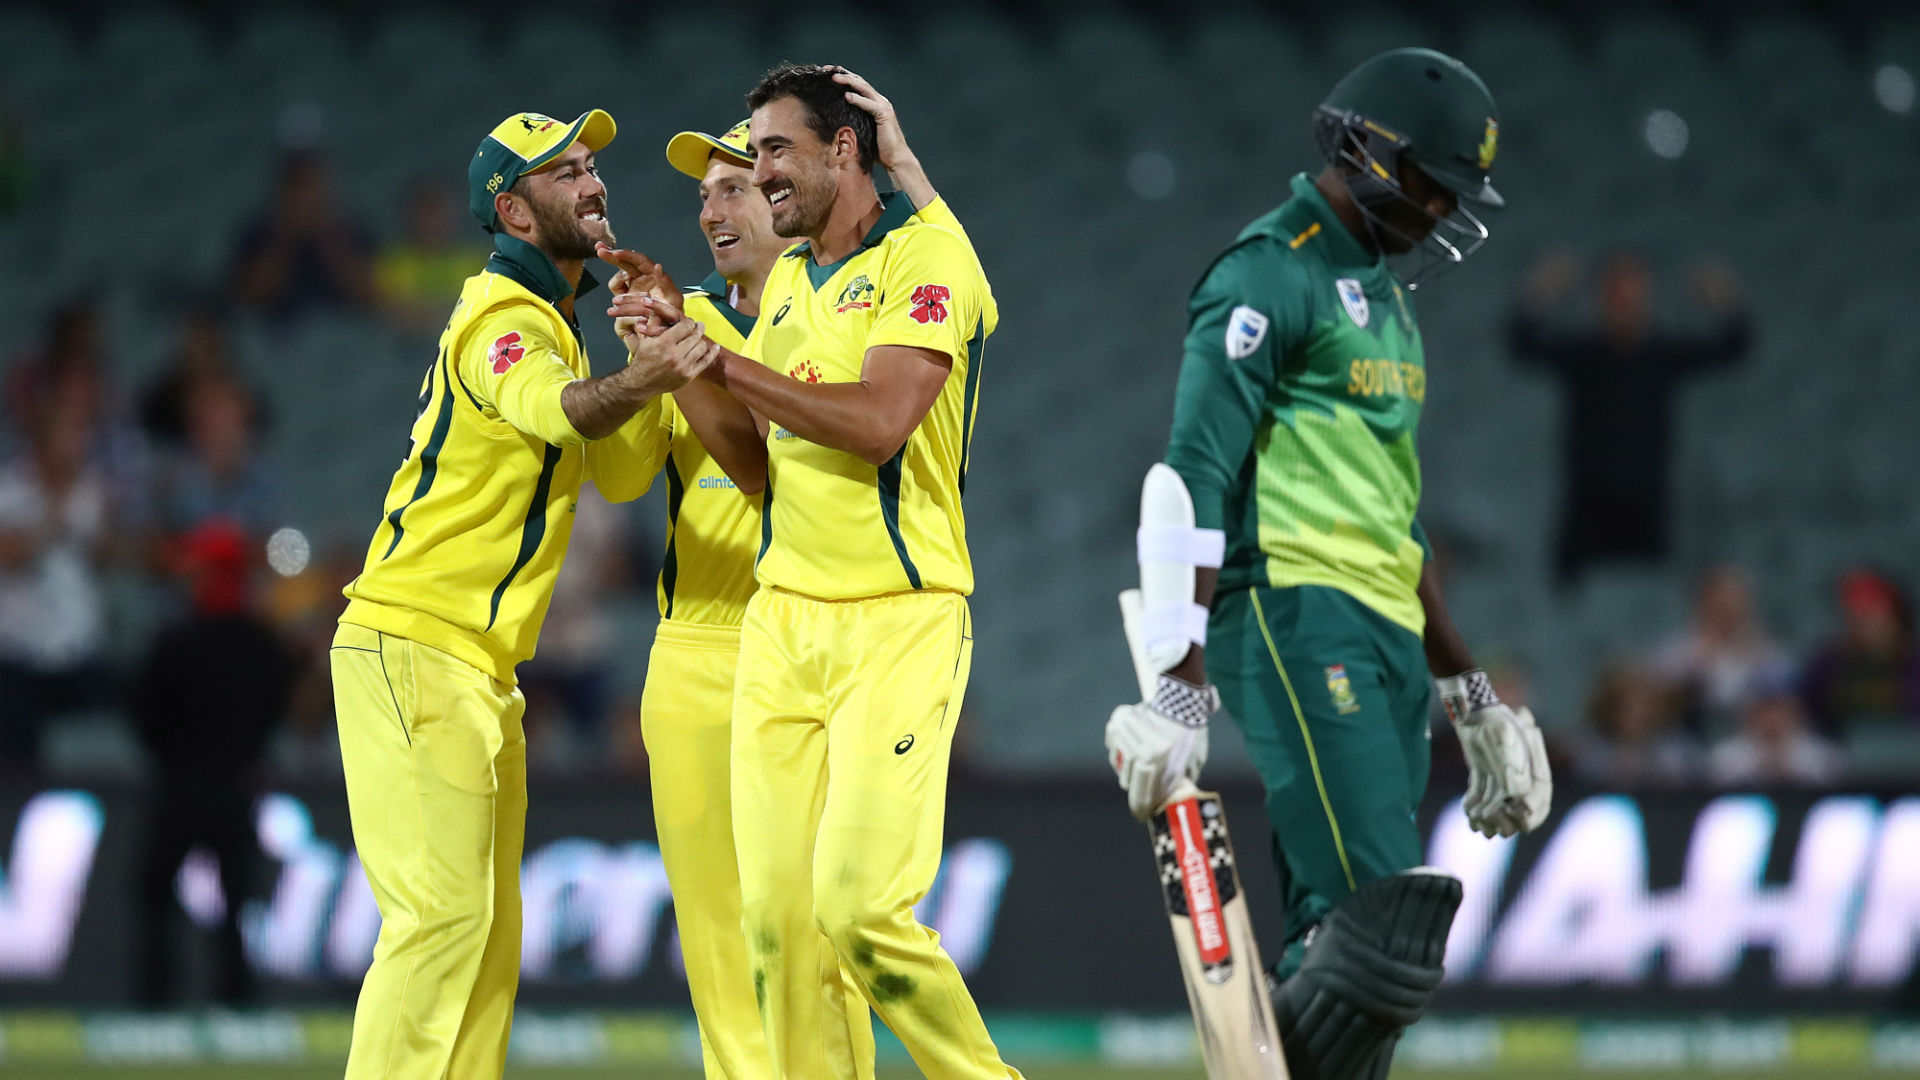 Australia end miserable run with ODI win over Proteas